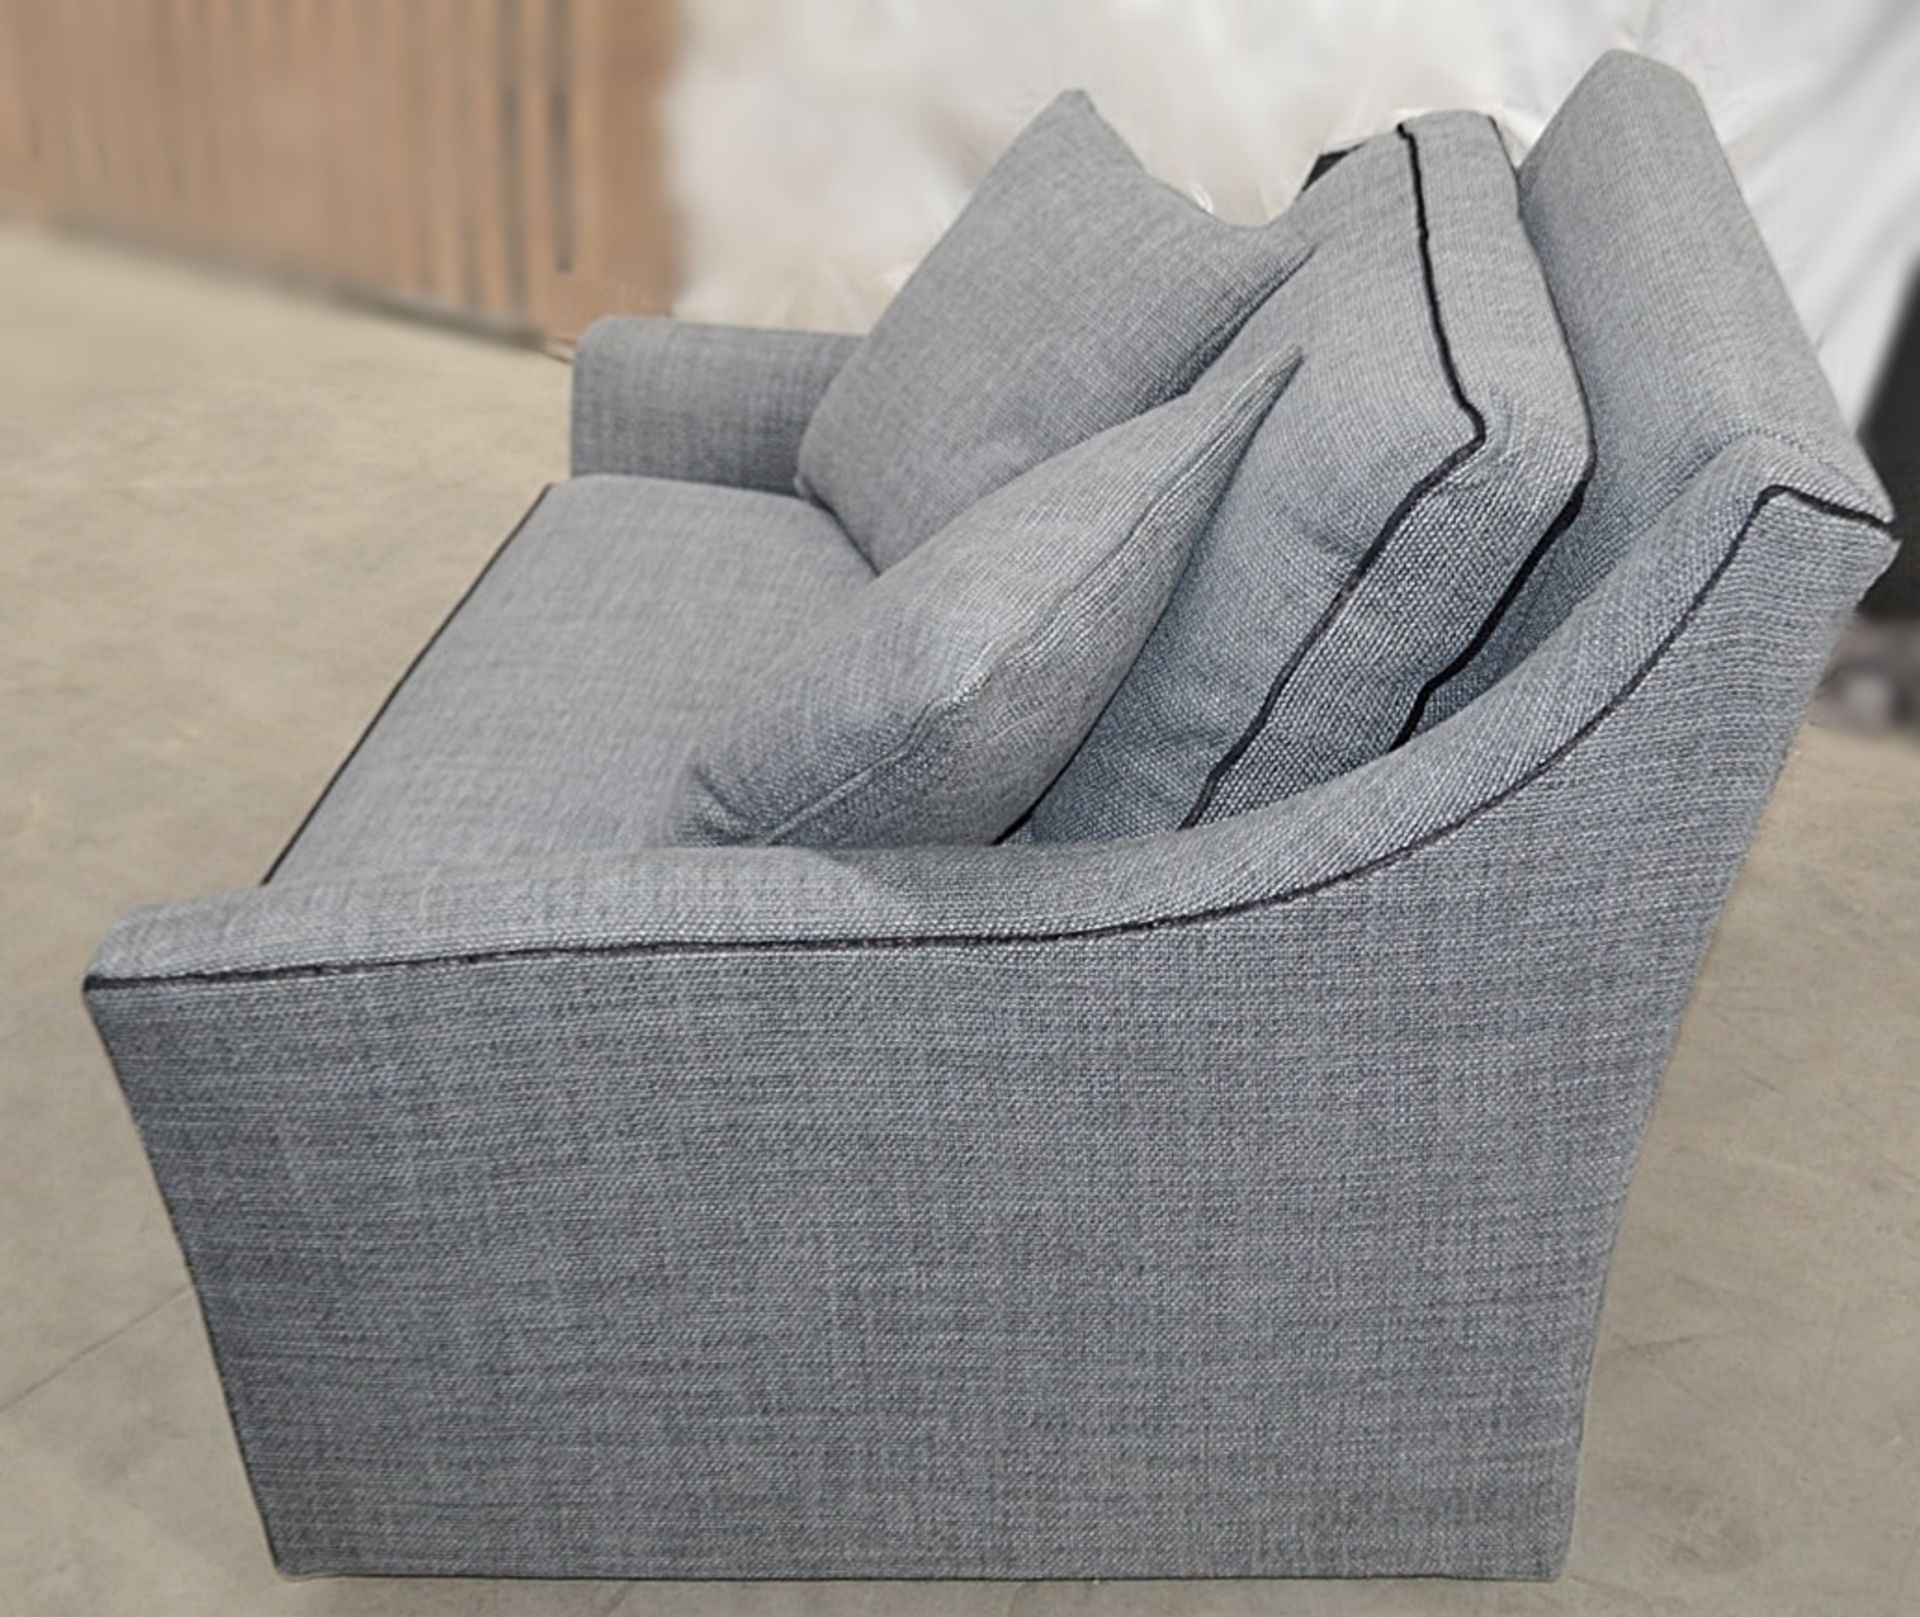 1 x DURESTA Hermitage Swivel Chair Upholstered In A Light Grey Premium Woven Fabric - RRP £3,729 - Image 4 of 7